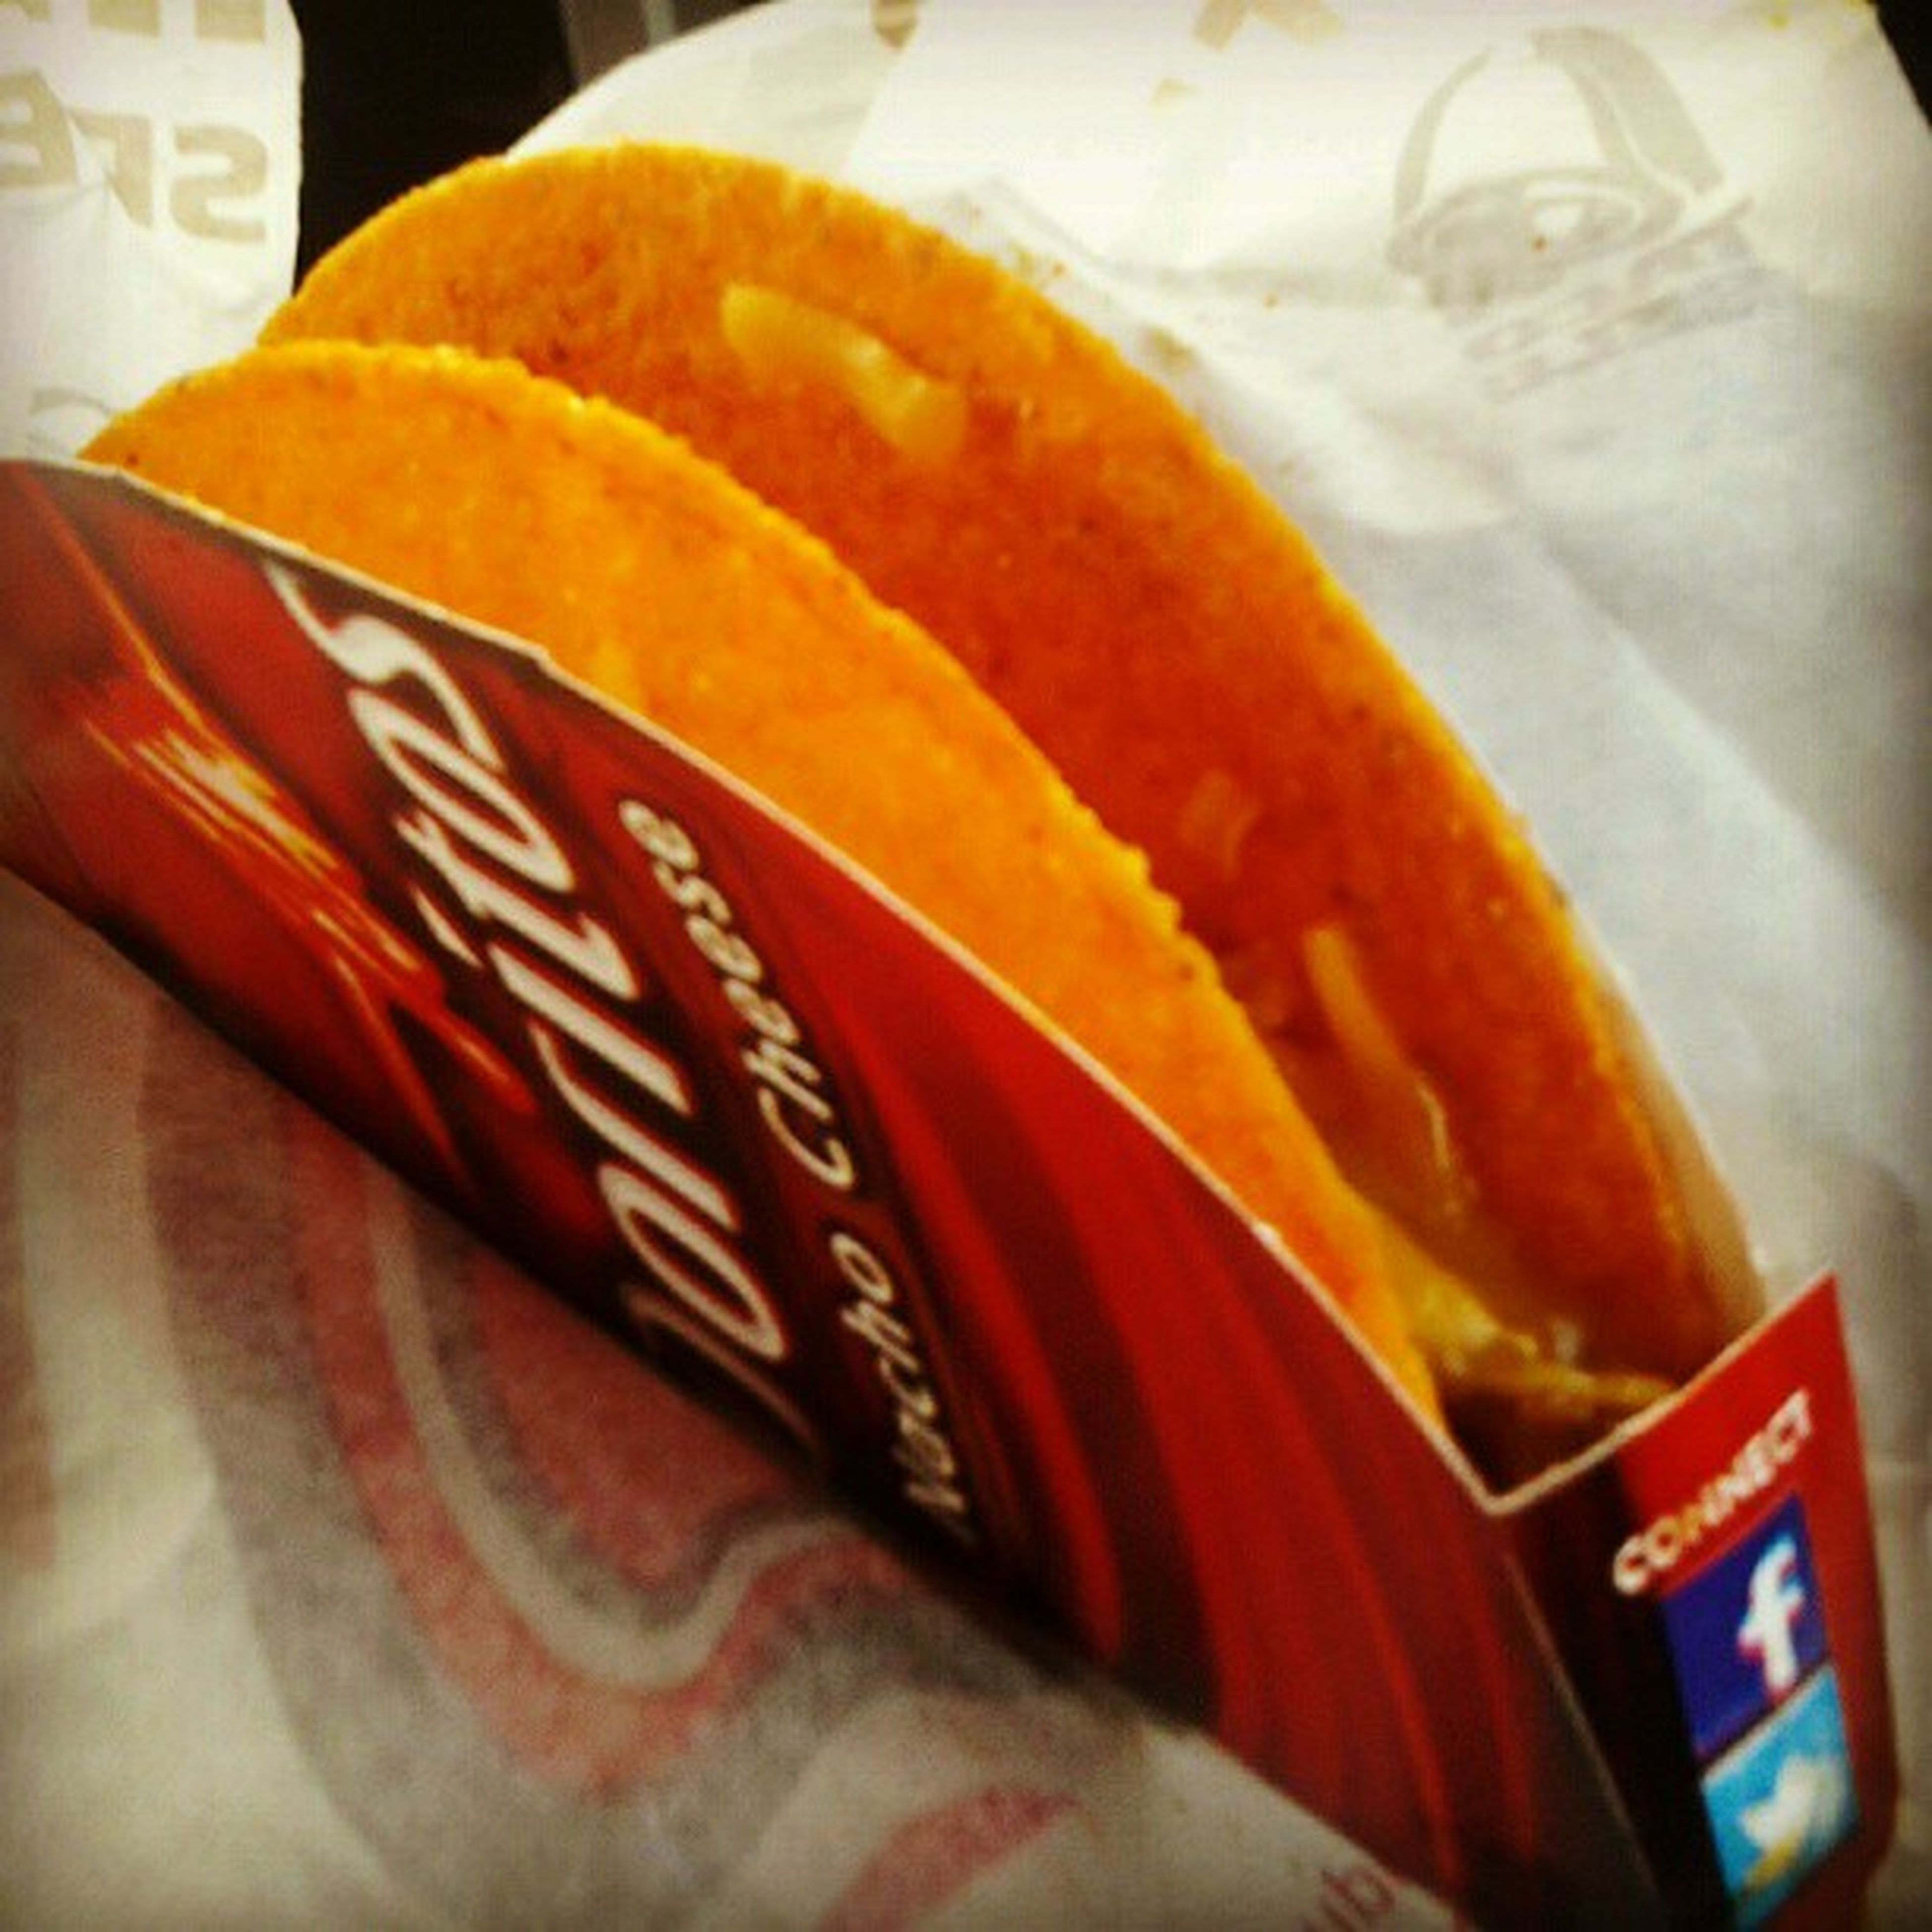 Who ever thought of this needs a mf medal forreal Love Tacobell Locostacos Genius tarantino followme